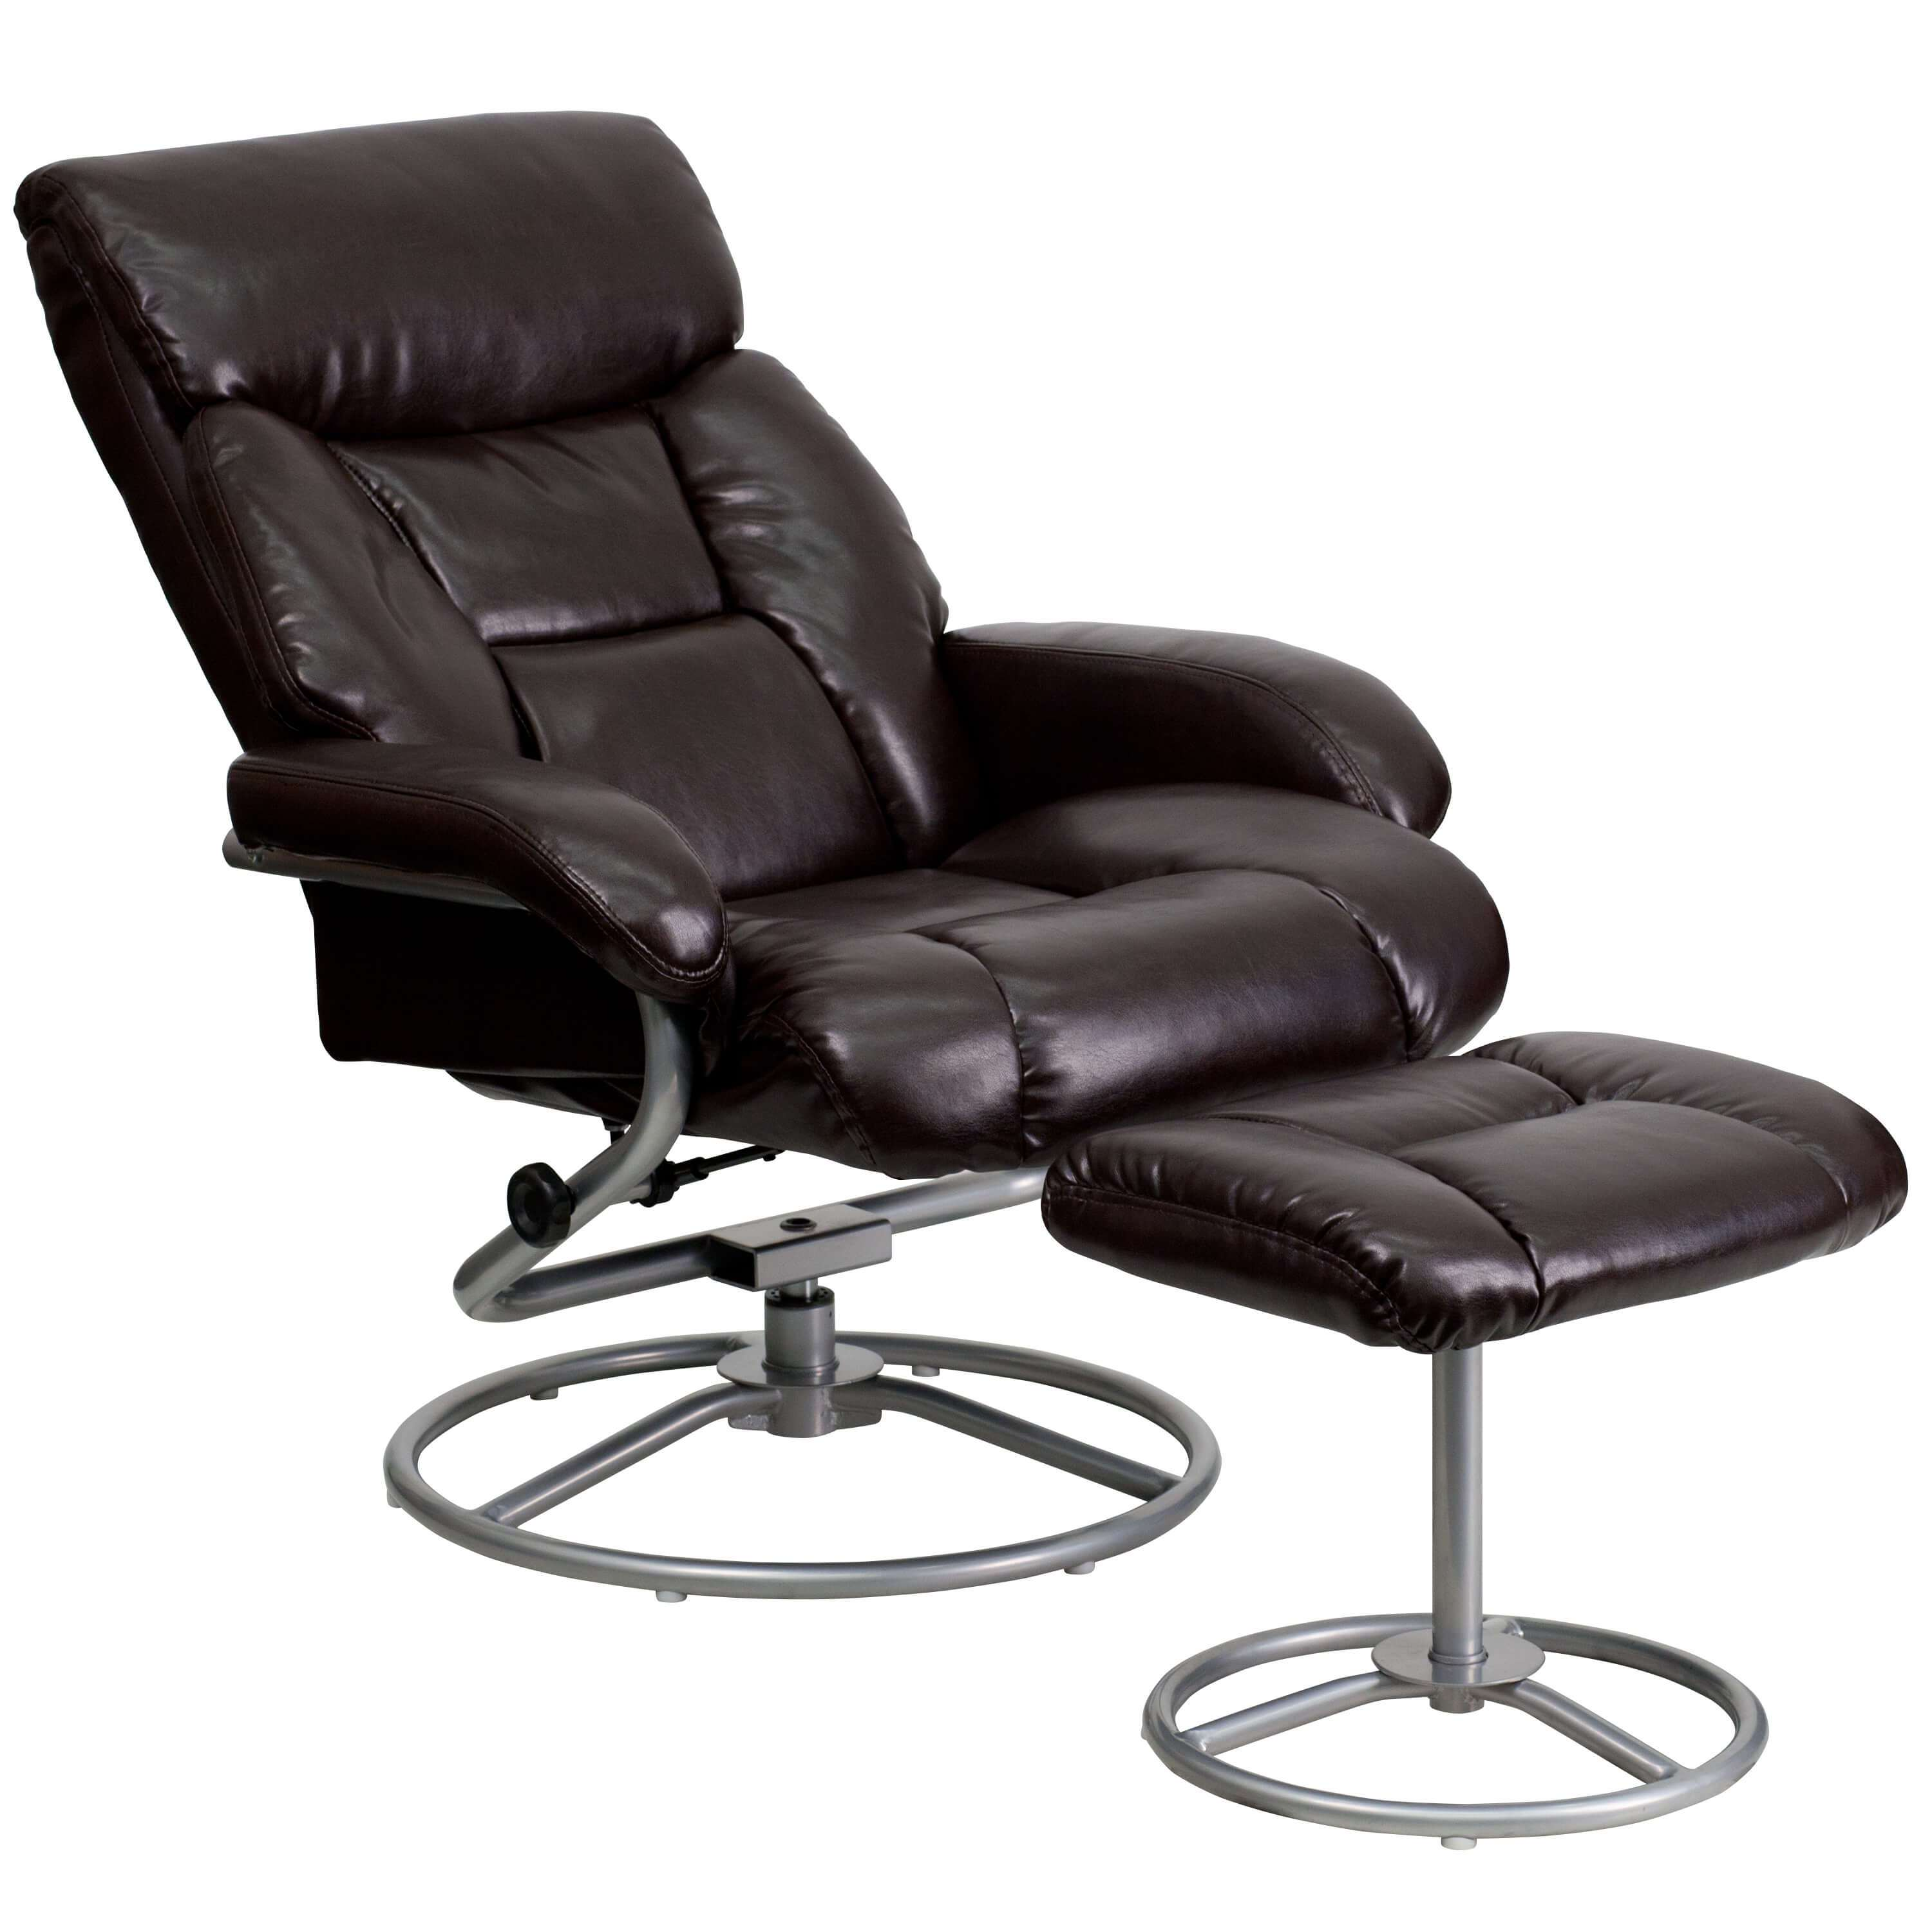 Contemporary leather recliners reclined view